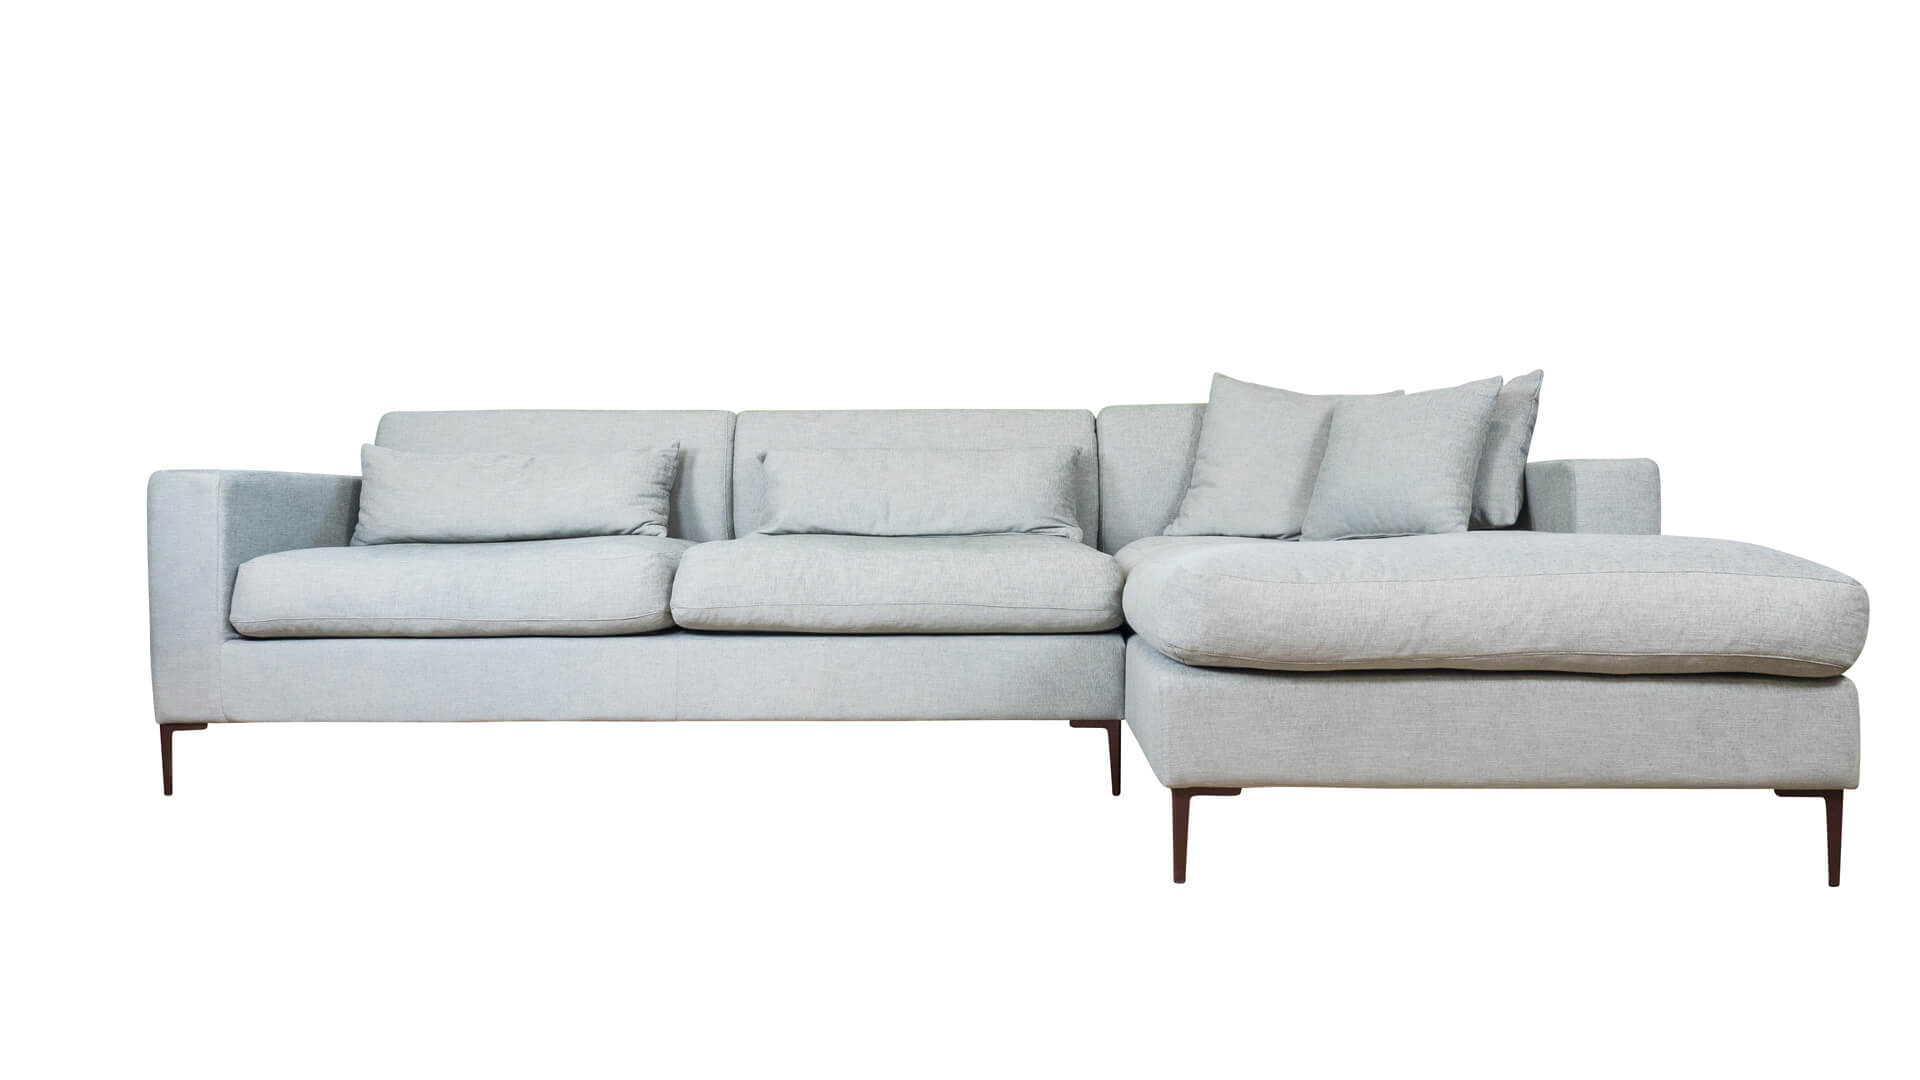 Sofas Sofort Archive Sofadepot